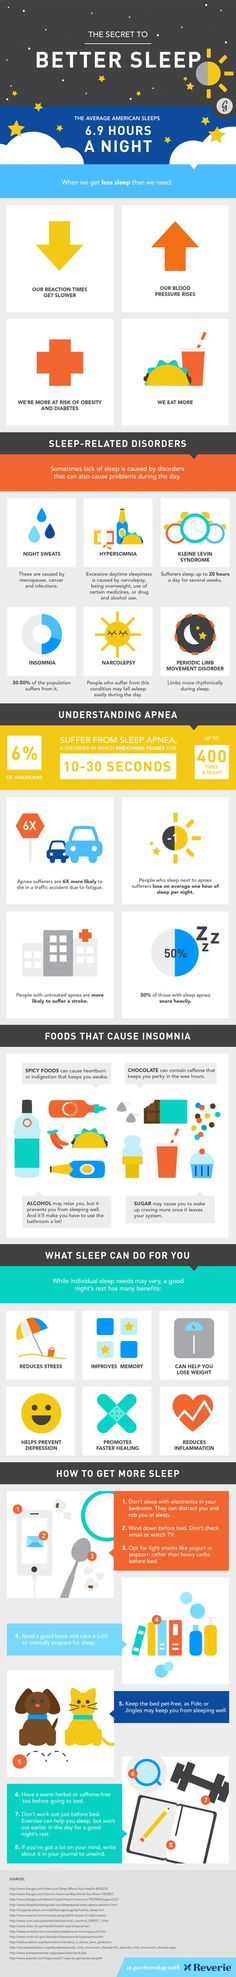 The Secret to Better Sleep by greatist:  There's a good chance you're not sleeping enough and an even better chance you don't realize how much it's hurting you. #Infographic #Sleep #Healthy_Living